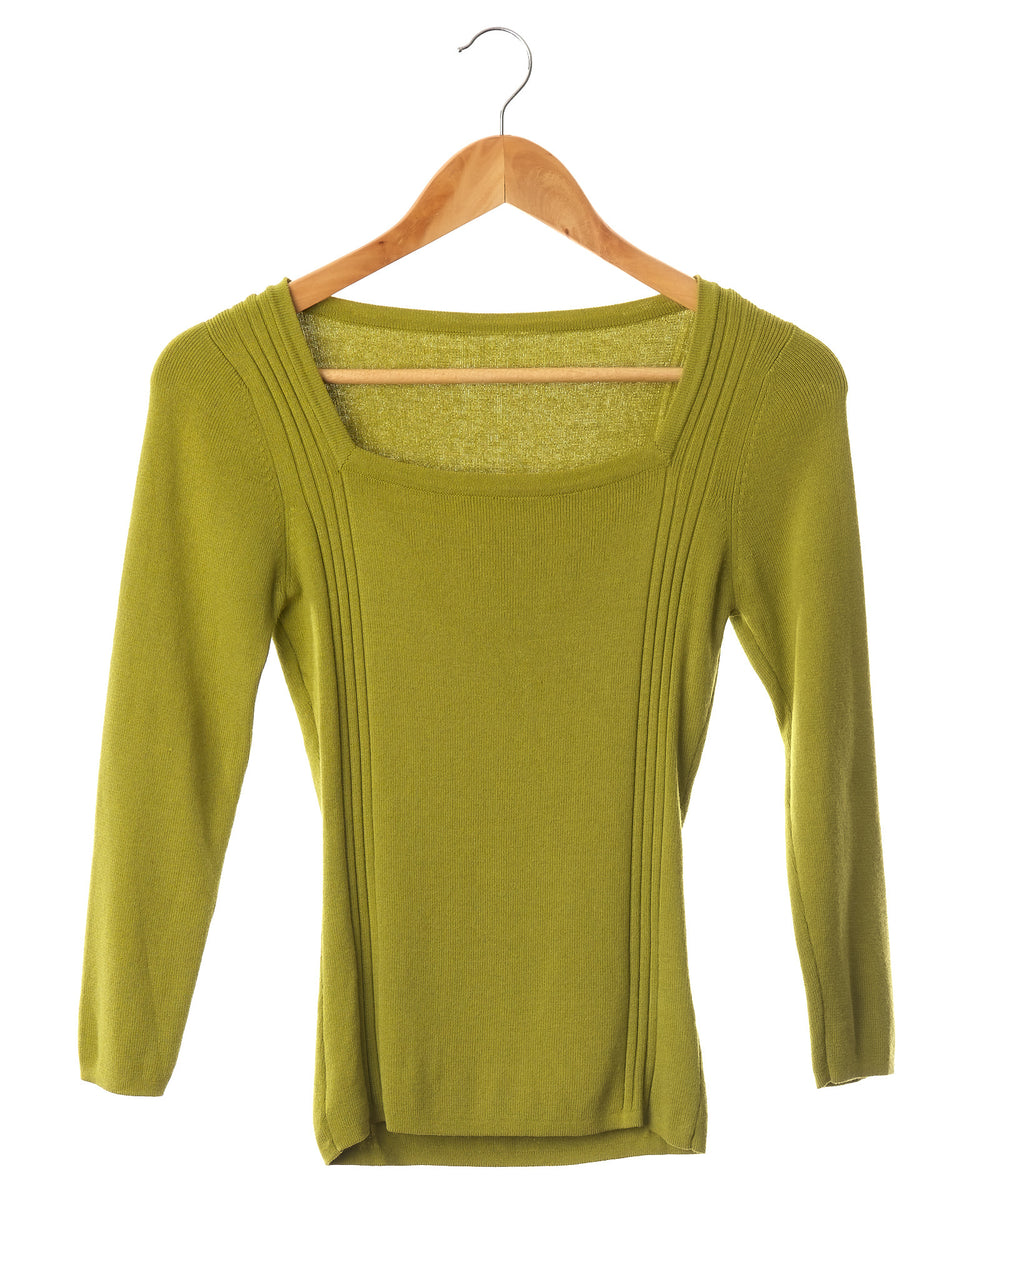 Lime Green Knit Top